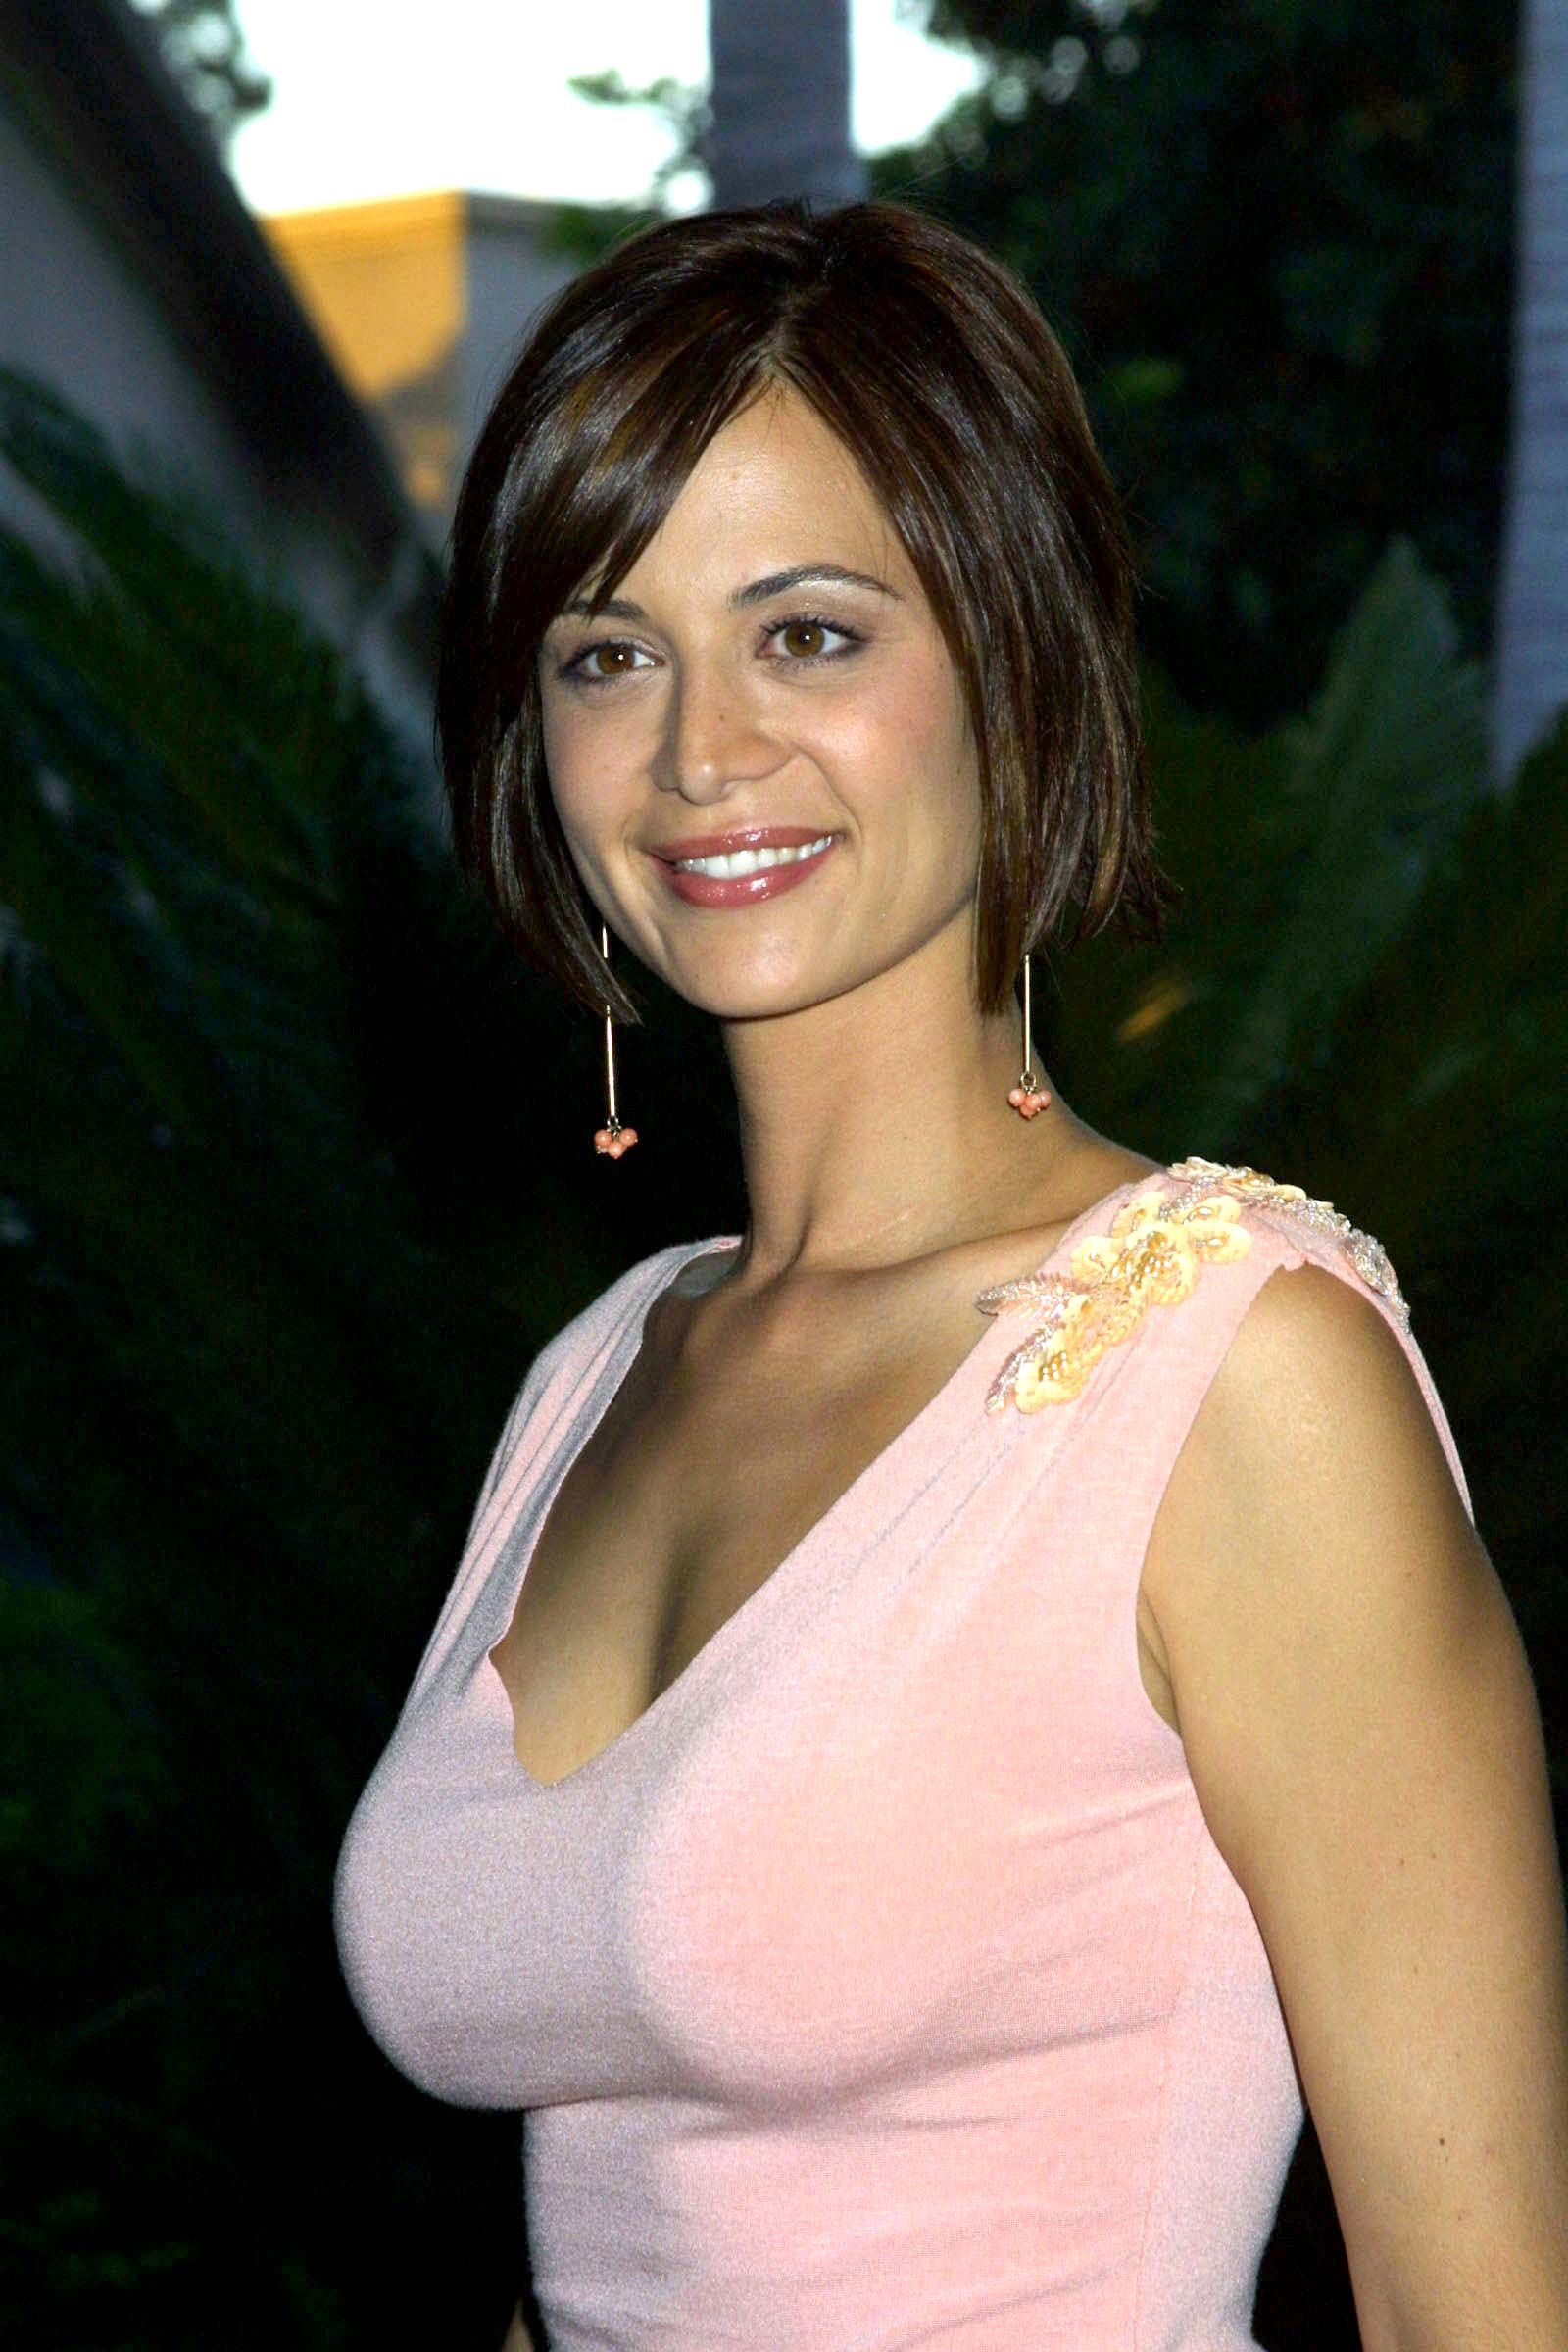 Nude photos of catherine bell images 845